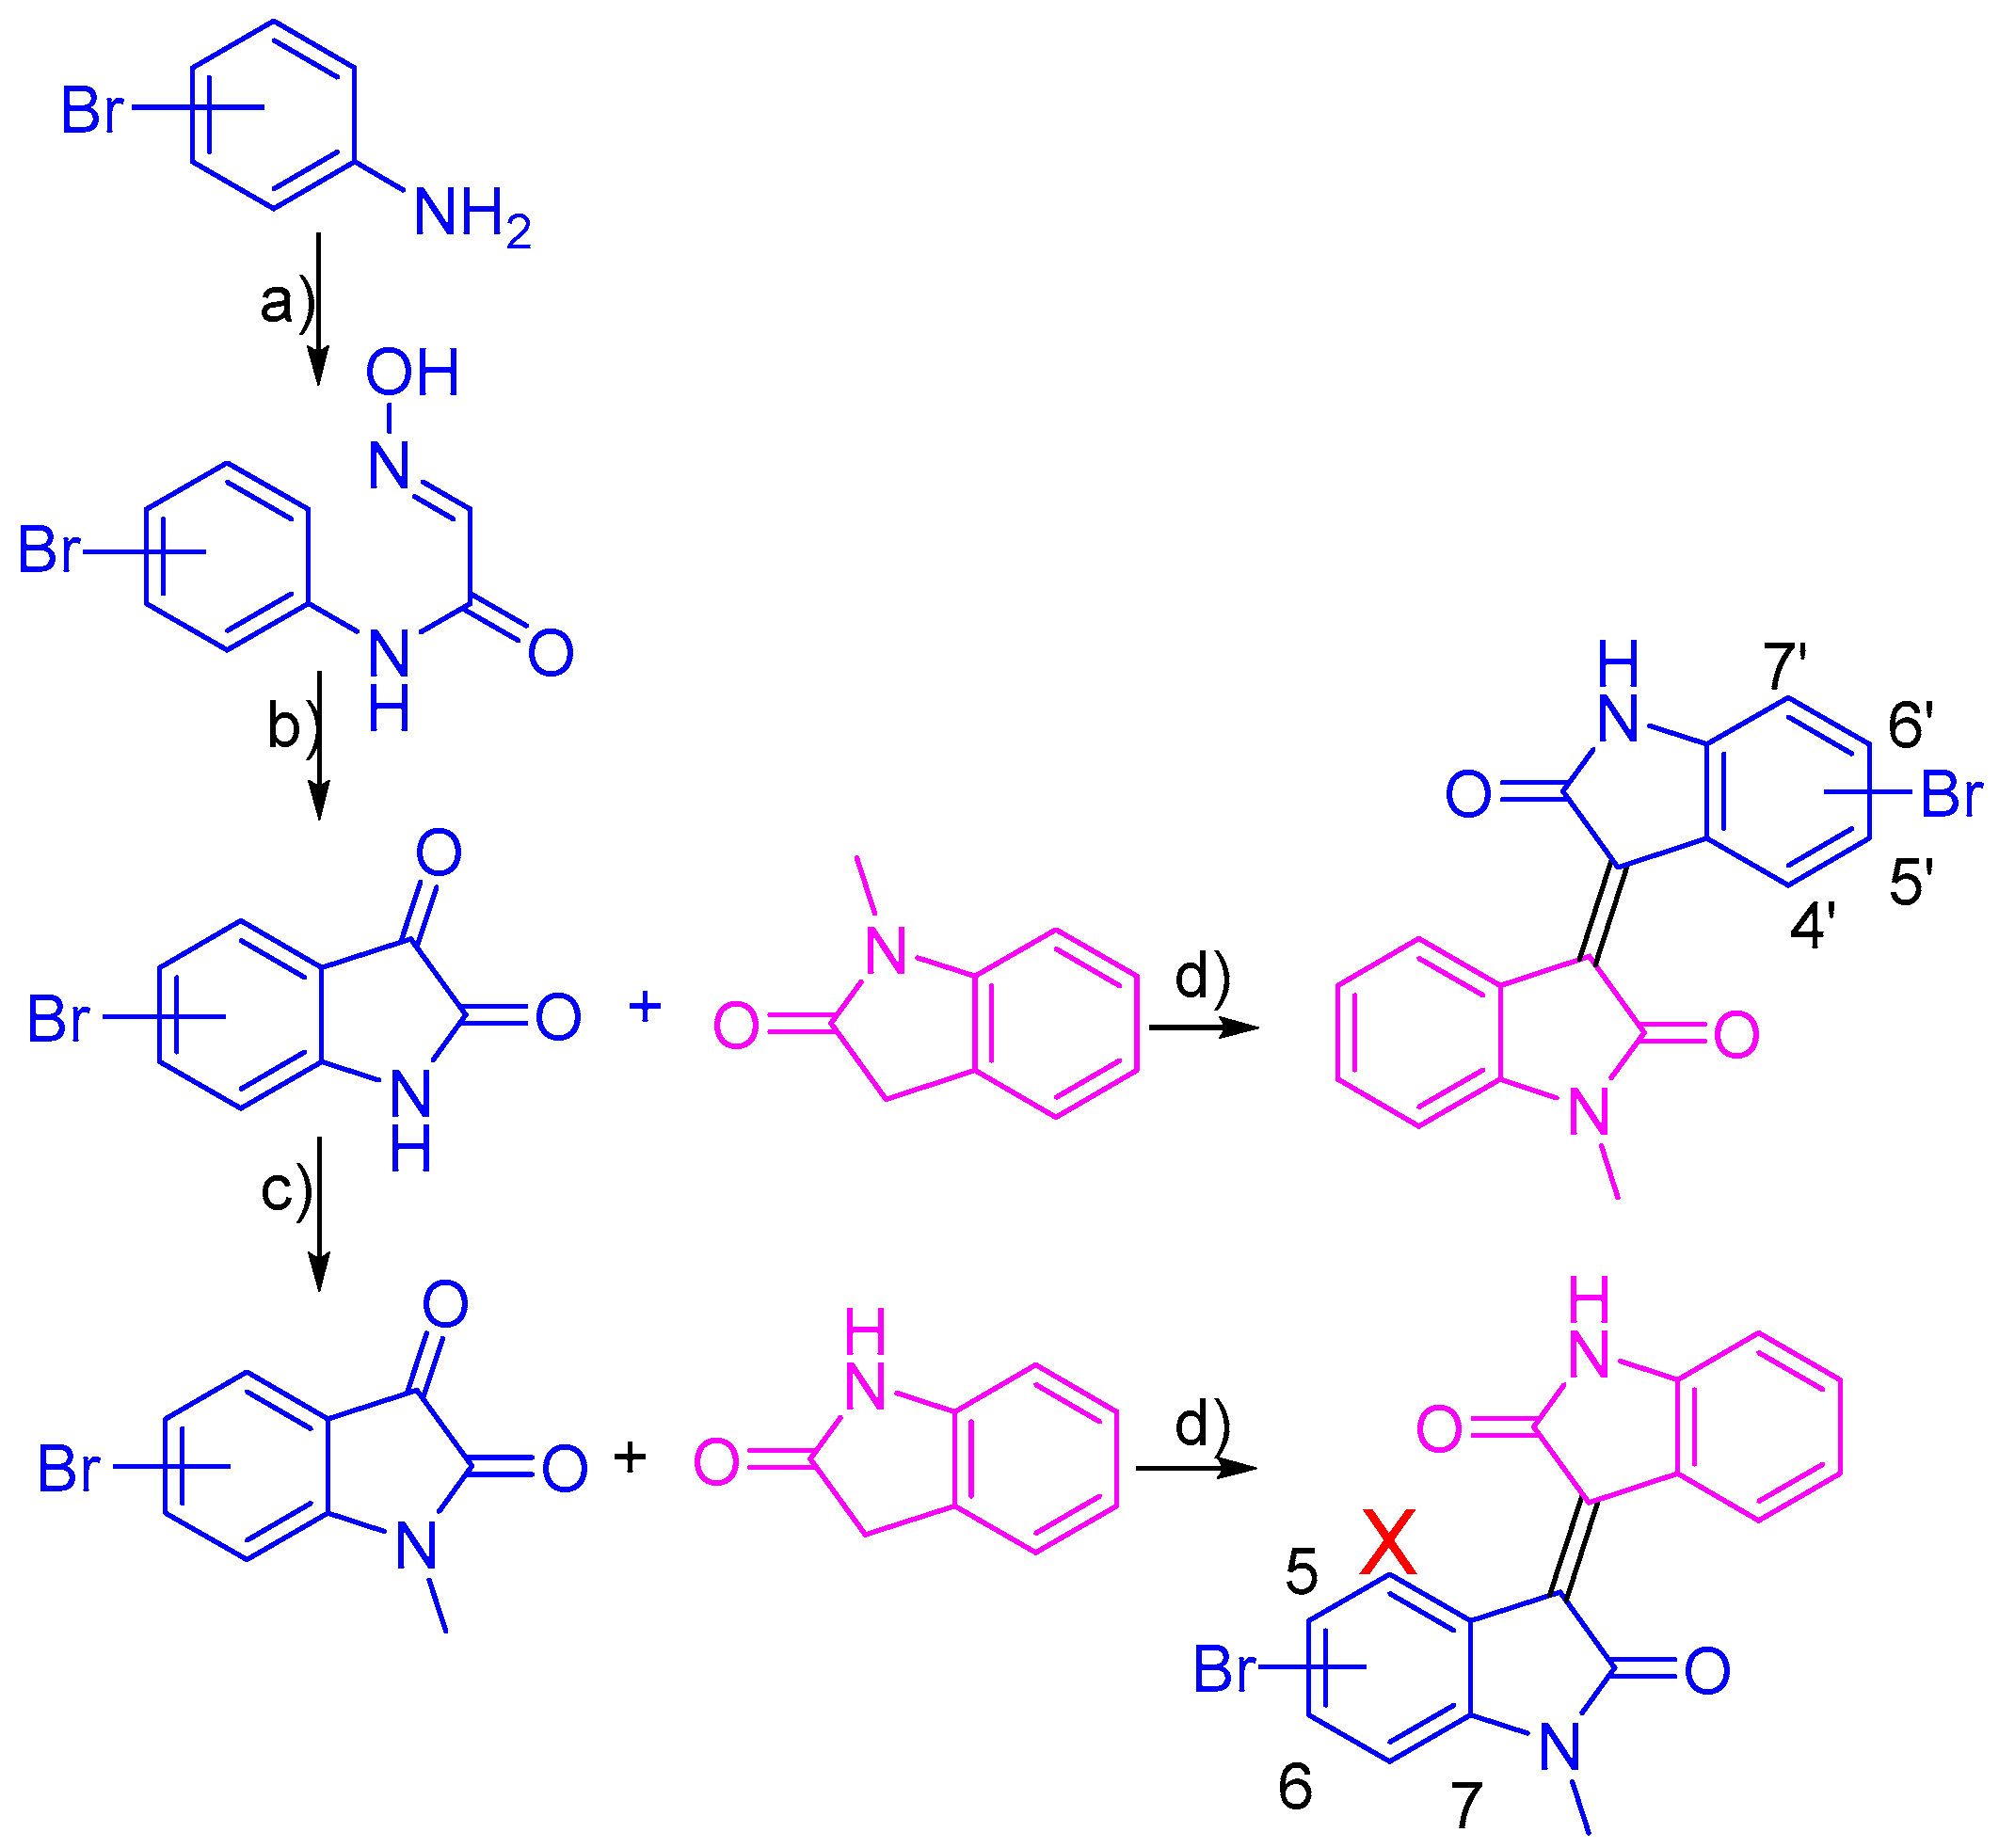 Molecules 22 01546 sch001